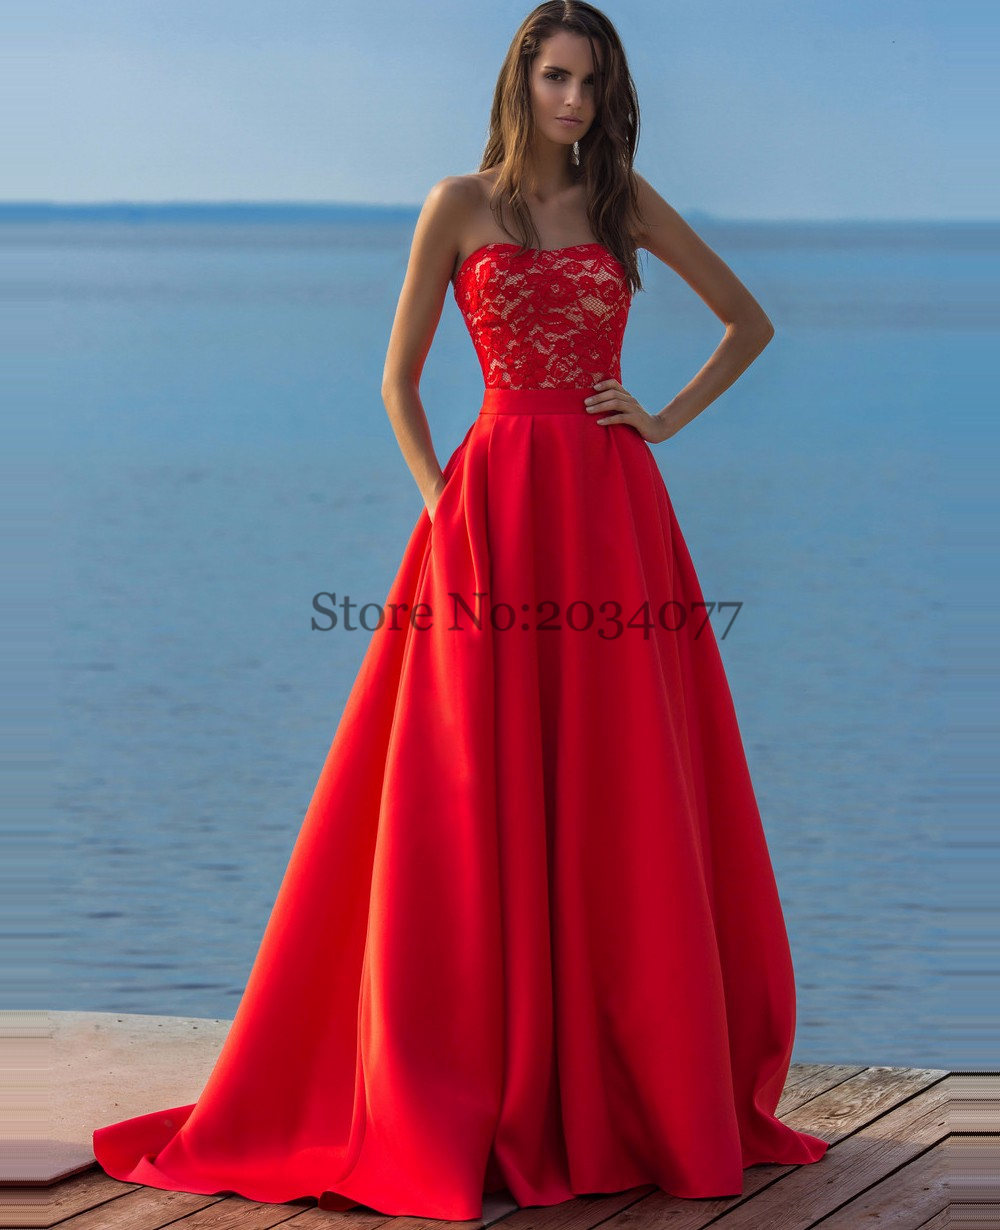 Red Prom Dress Removable Skirt Long Elegant Lace Strapless Imported ...